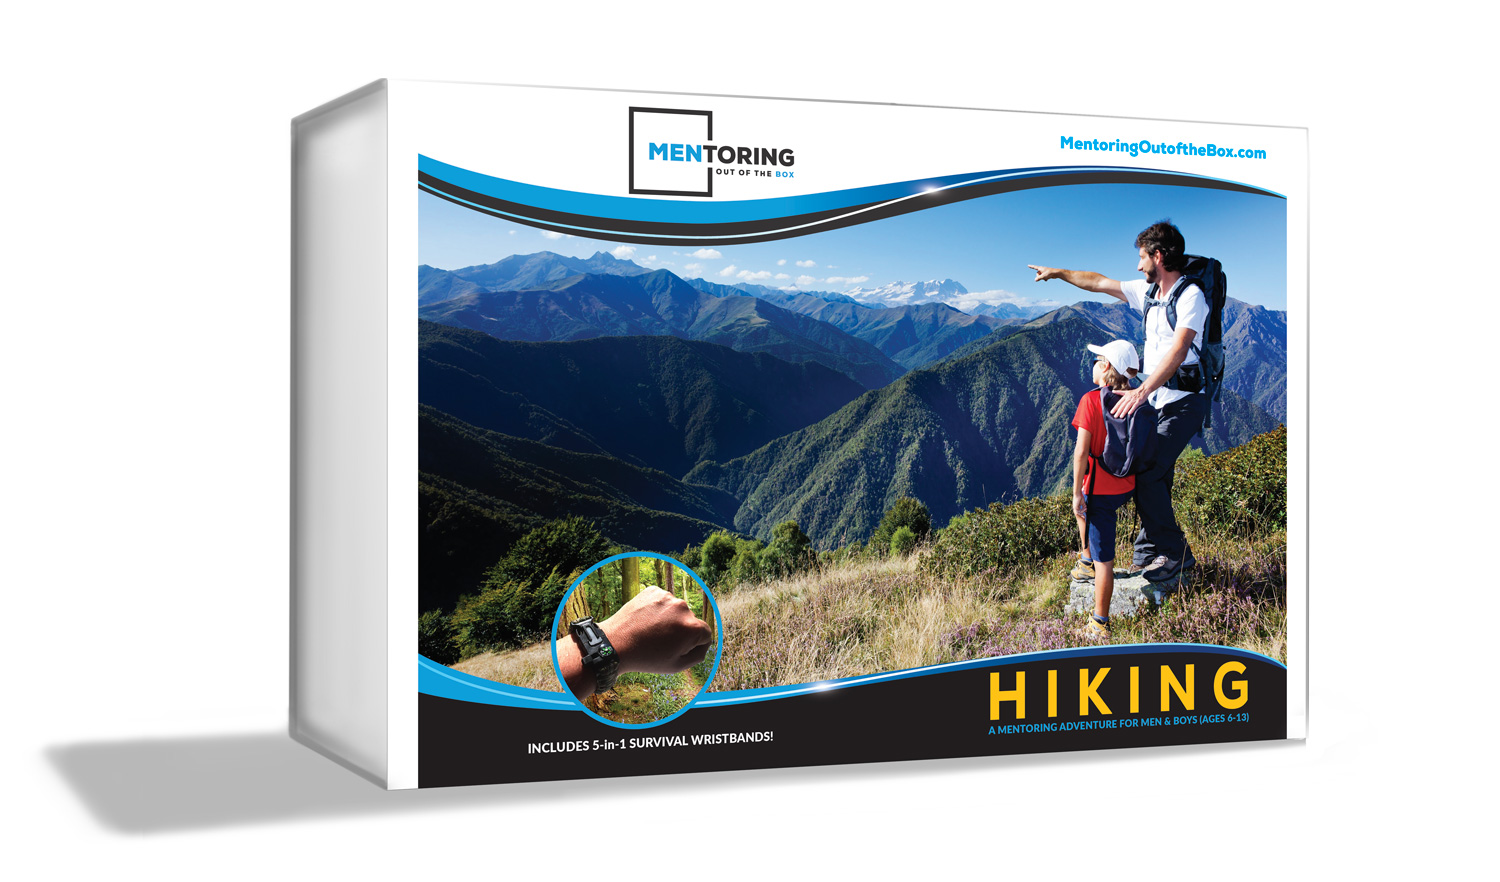 Mentoring Out of the Box - Hiking - is for up to (5) boys to learn to enjoy nature!